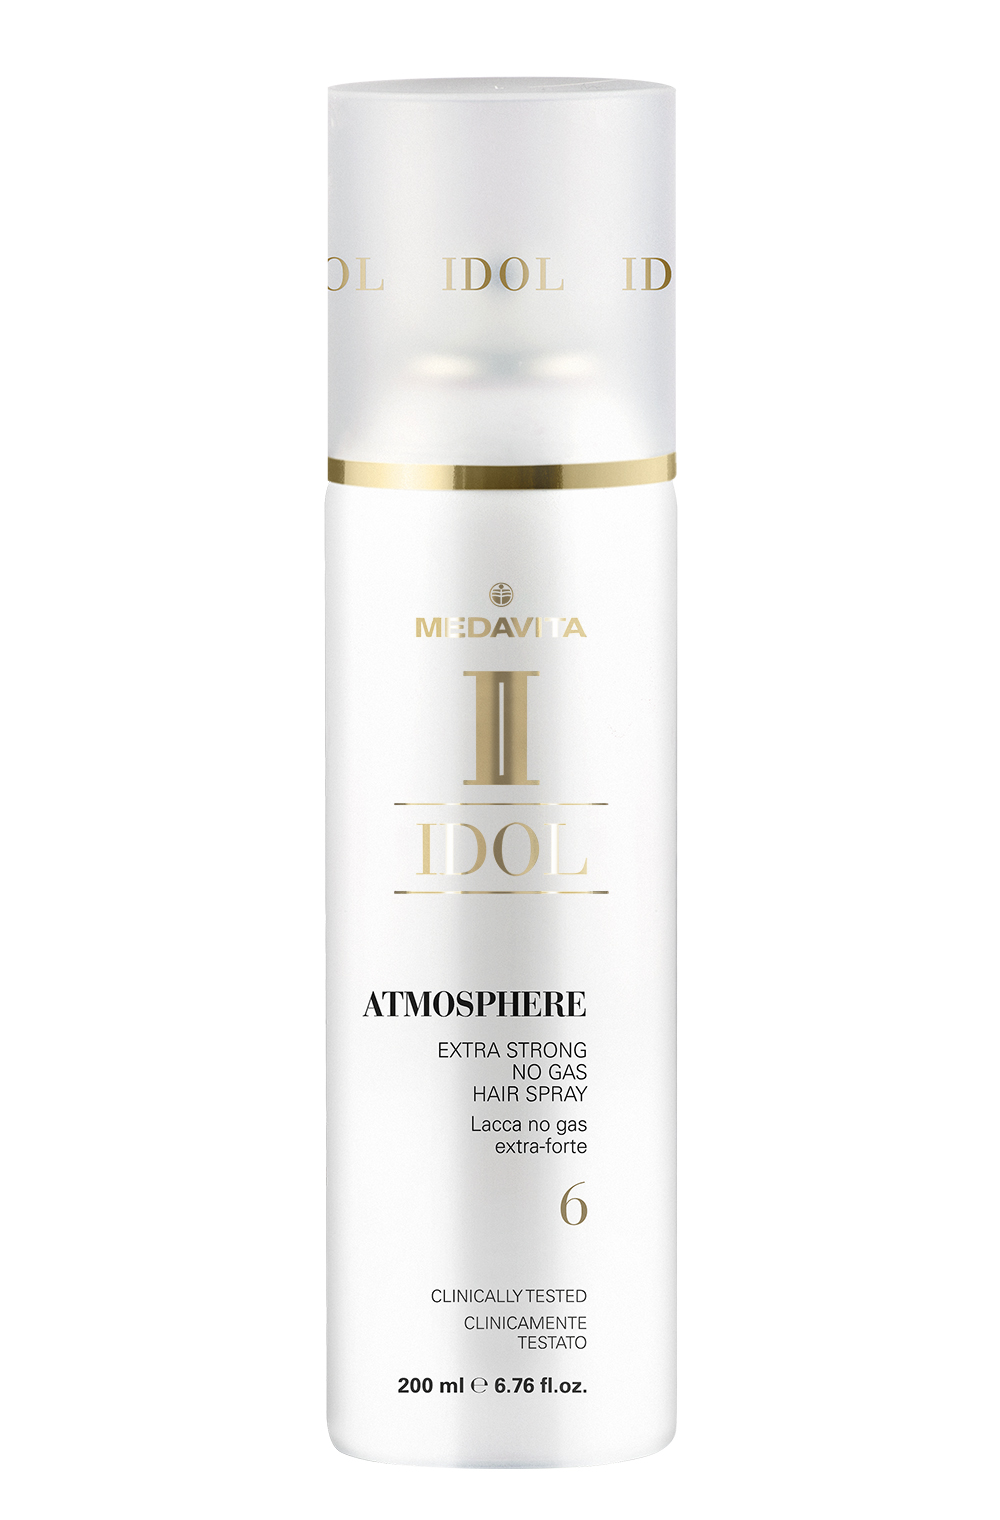 Atmosphere Extra IDOL 200ml-klein